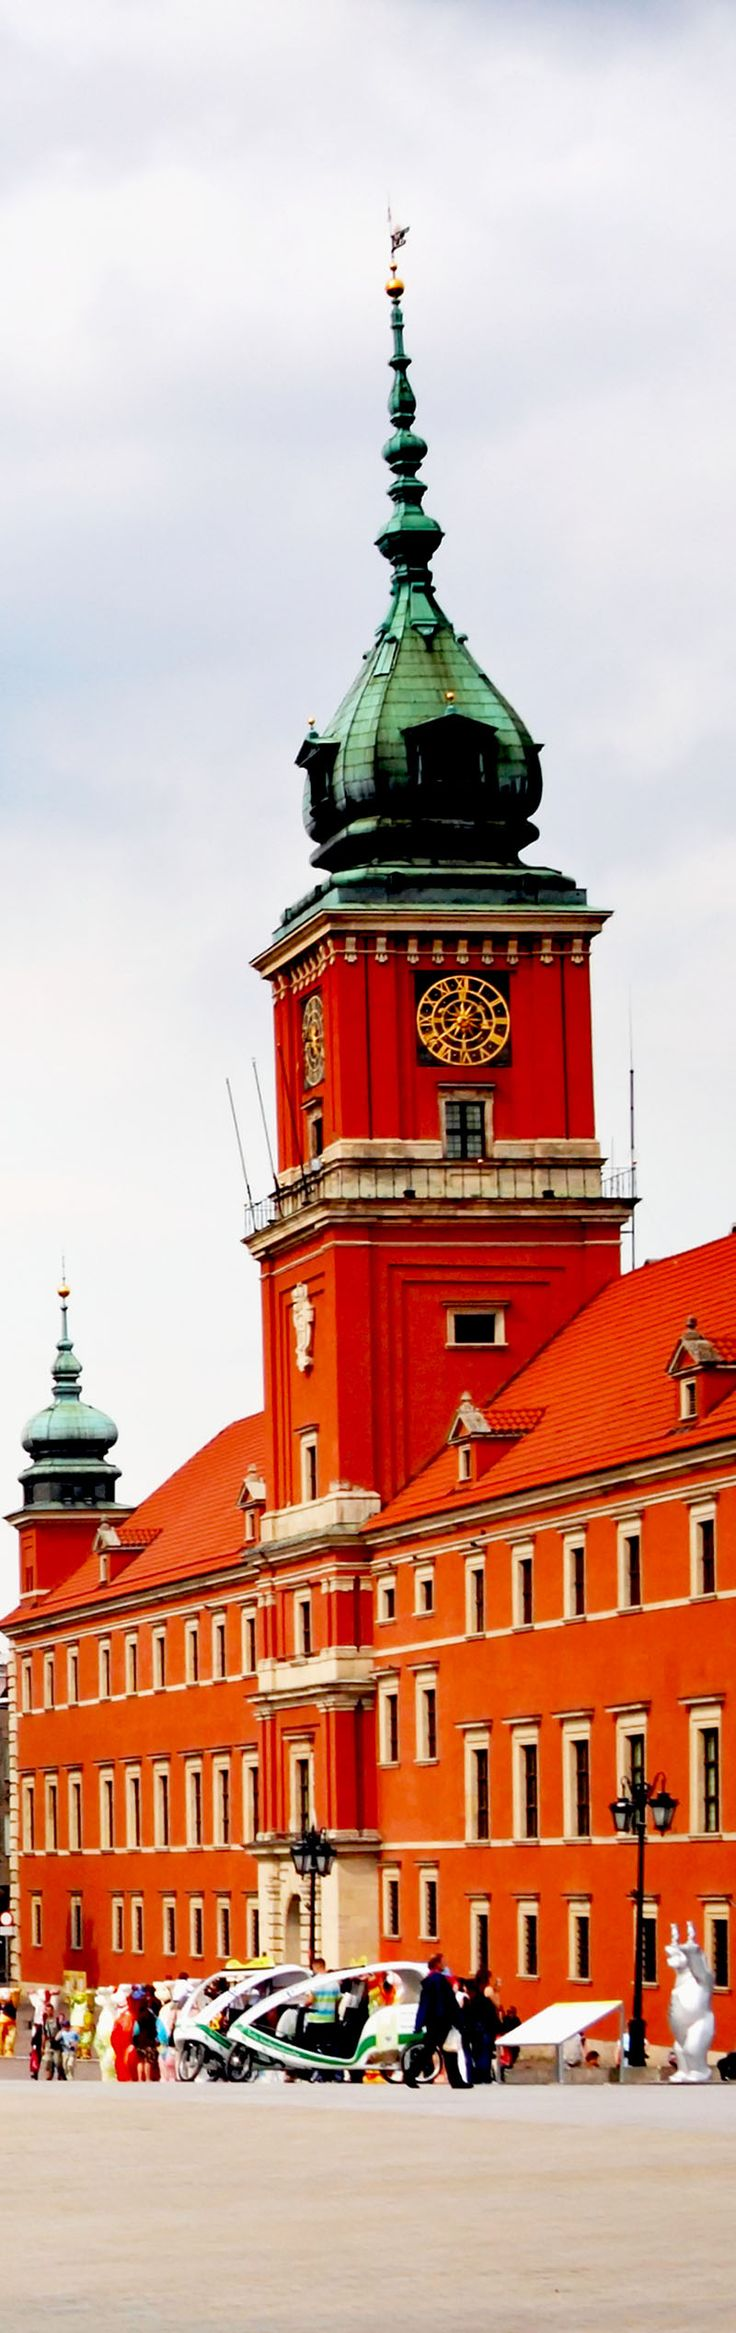 Amazing Warsaw Old Town   |   Amazing Photography Of Cities and Famous Landmarks From Around The World. http://reversehomesickness.com/europe/famous-german-castles/